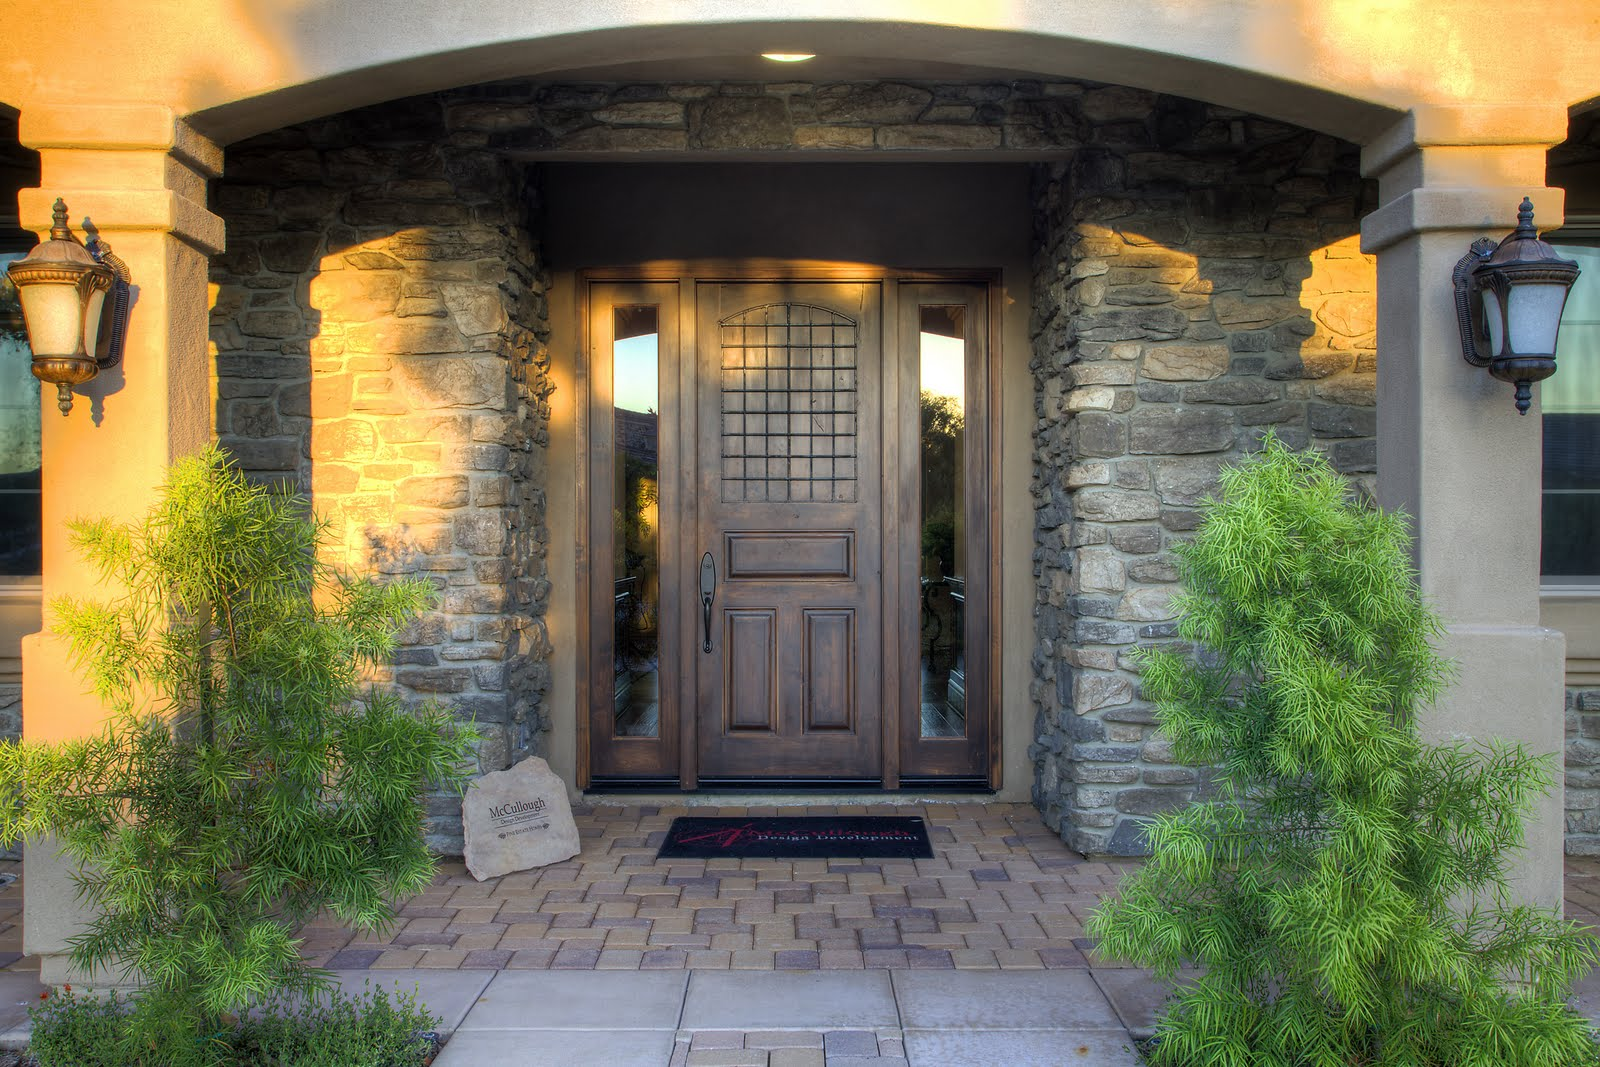 1067 #BF820C Our Standard Front Doors Are Custom Designed Of Solid Alder Wood And  save image Solid Front Doors For Homes 44171600